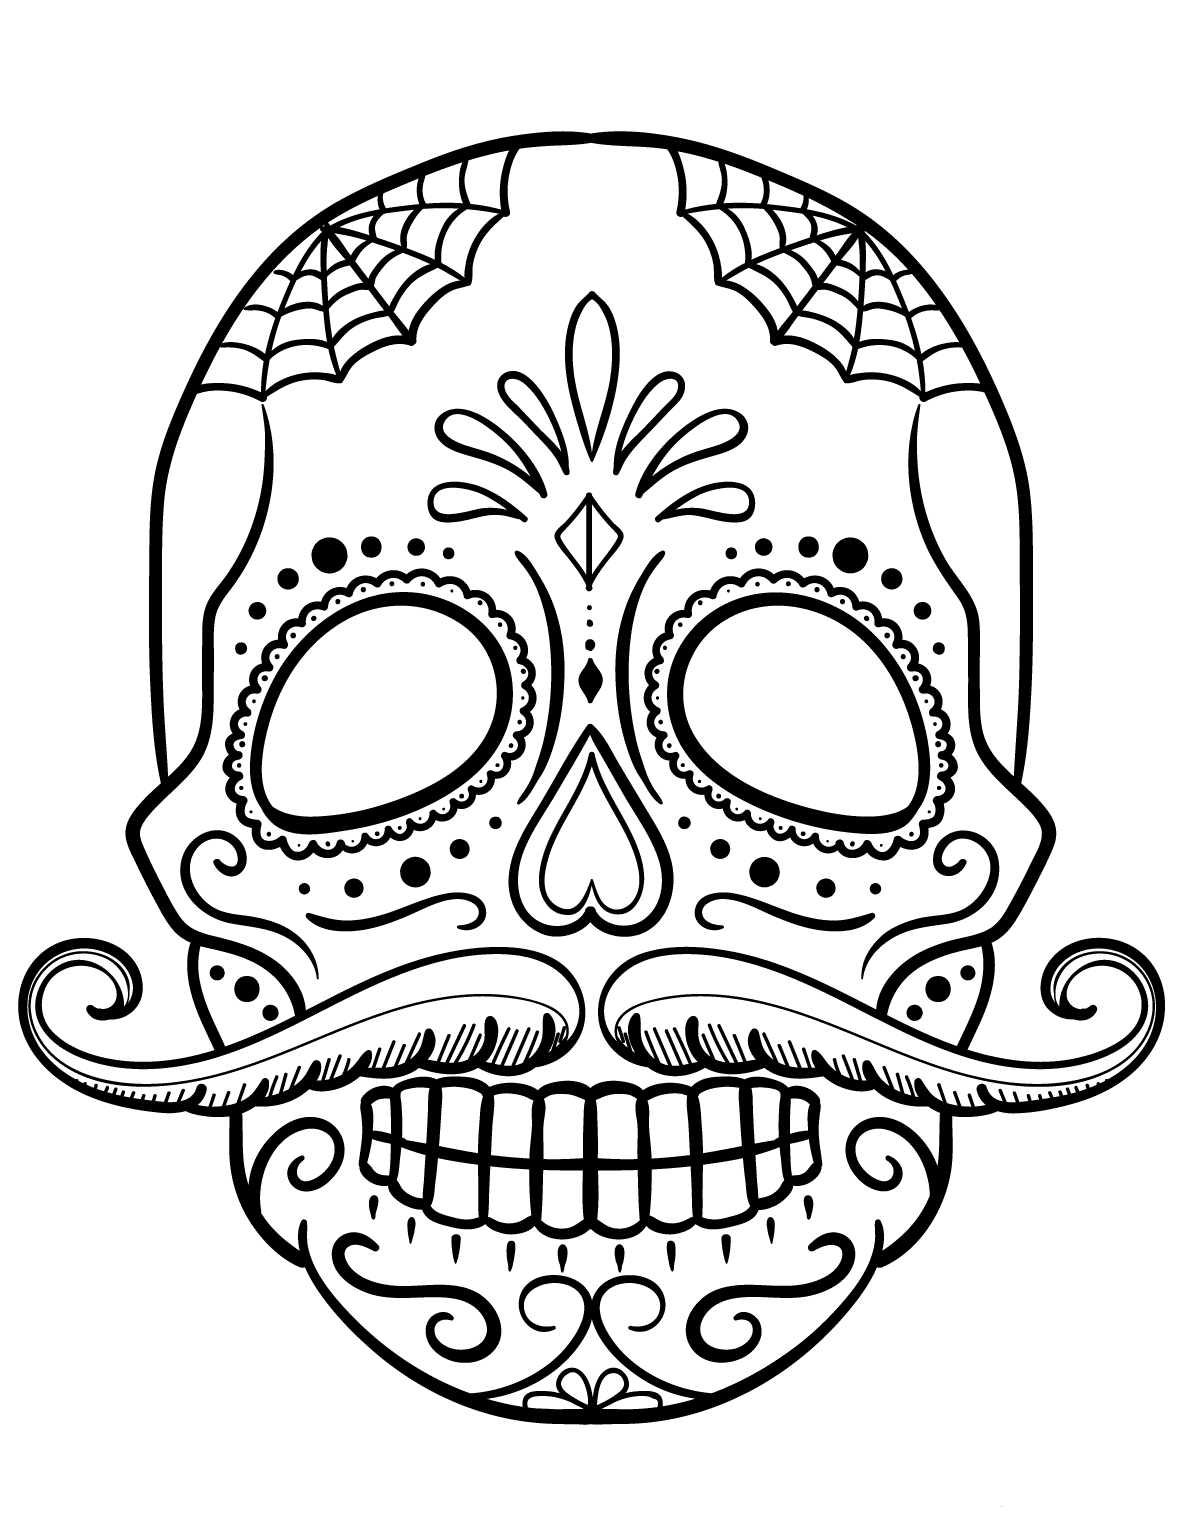 sugar skull coloring pages free 30 free printable sugar skull coloring pages sugar pages free skull coloring